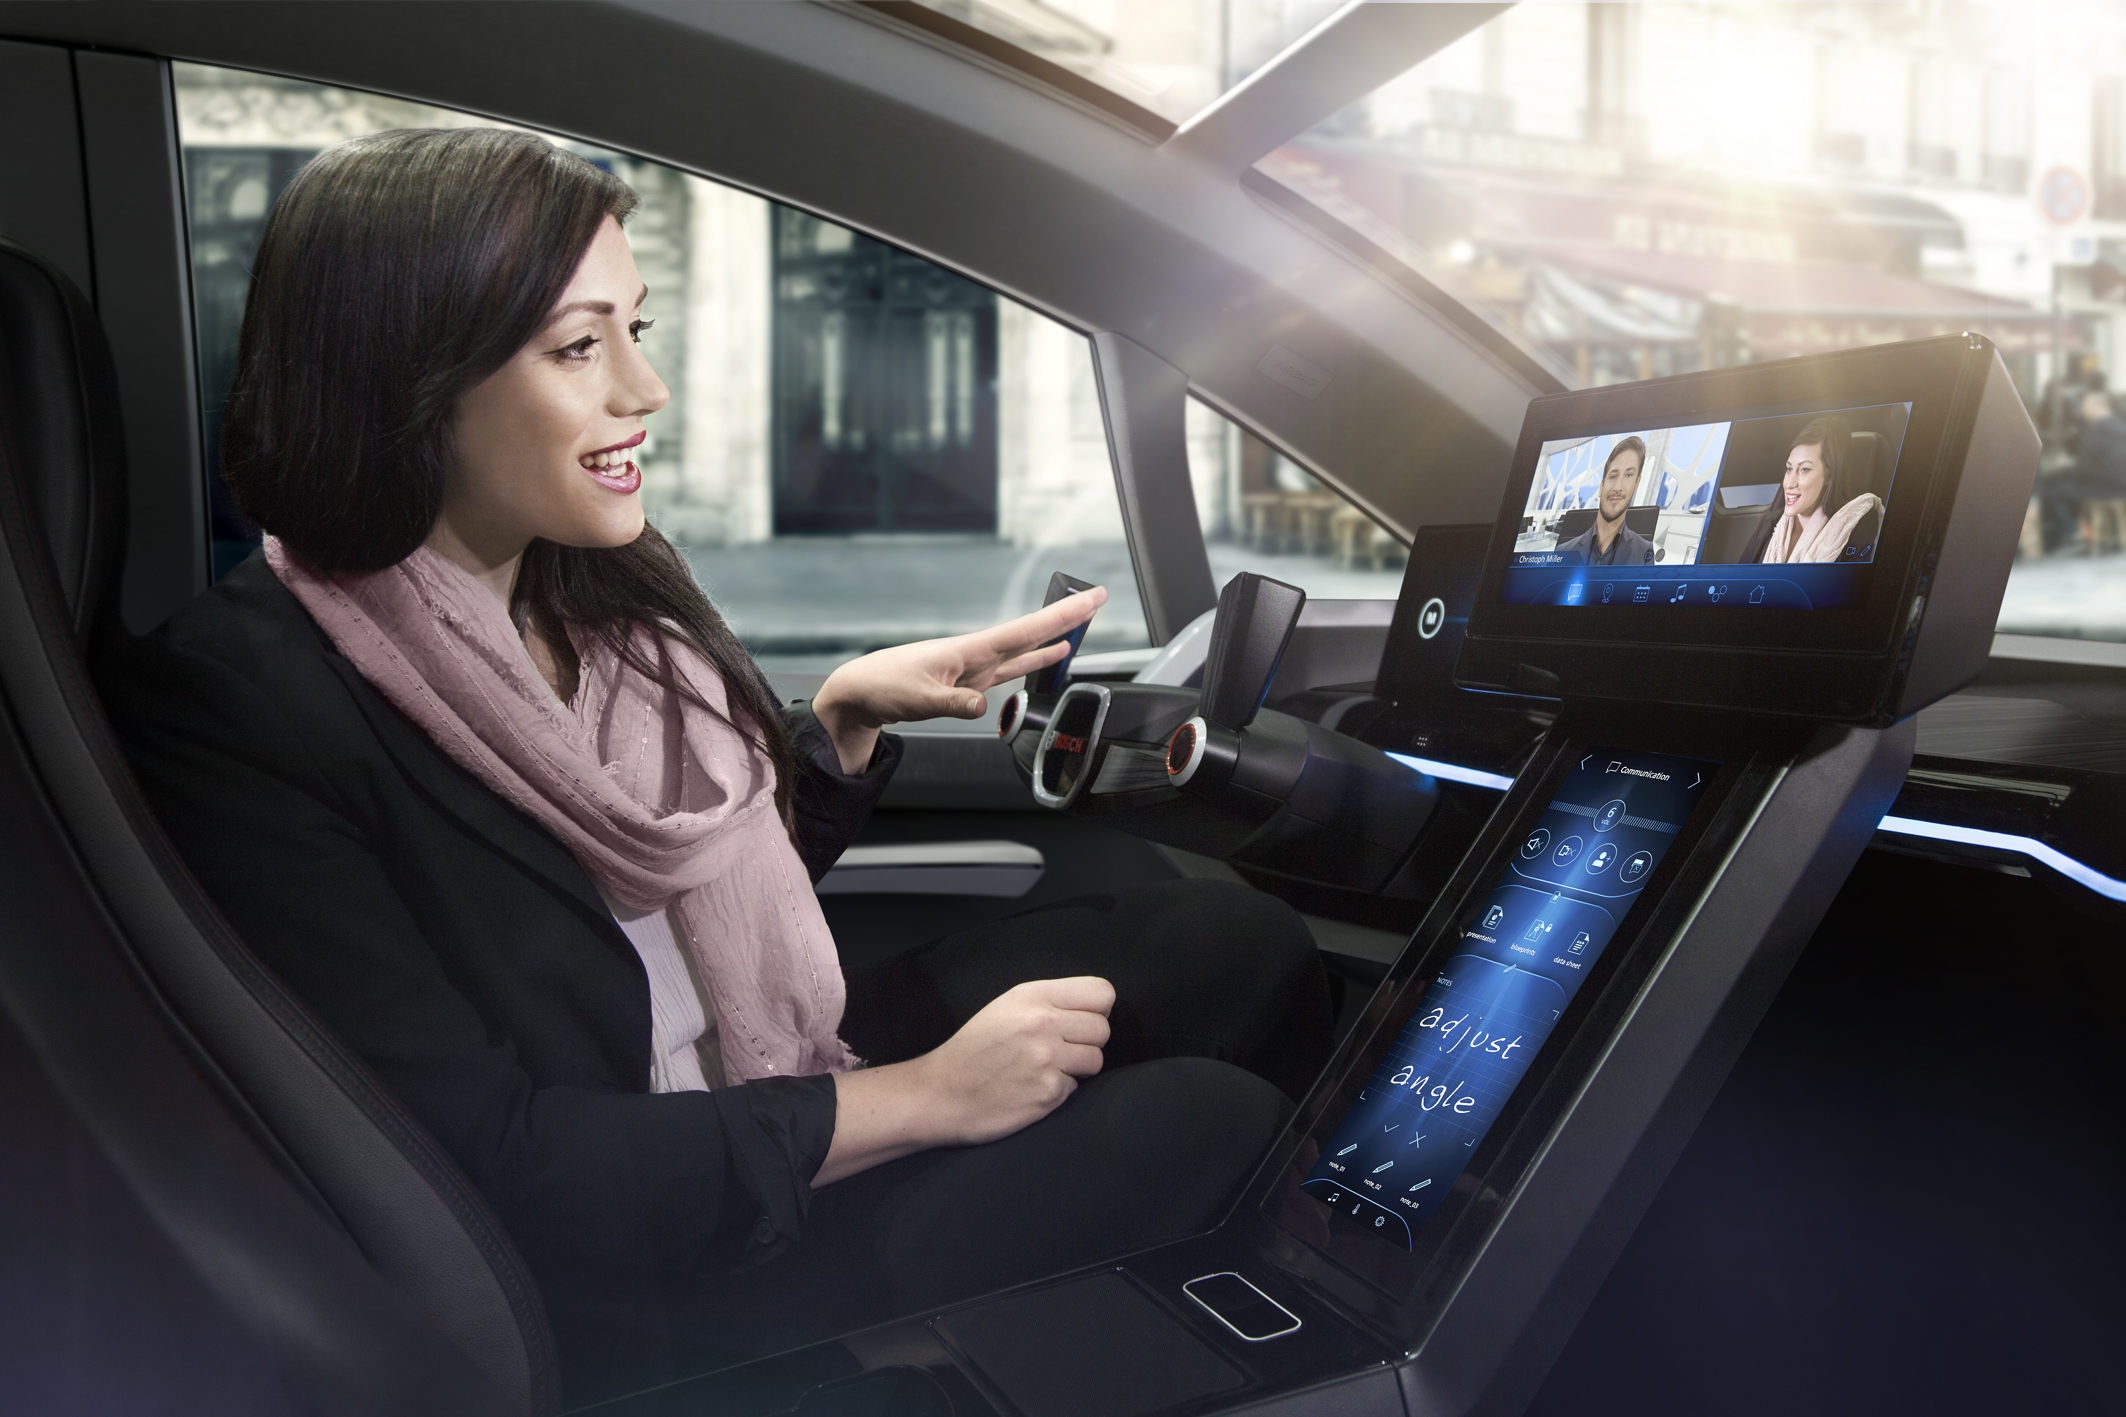 Human Machine Interface – the communication between car and driver